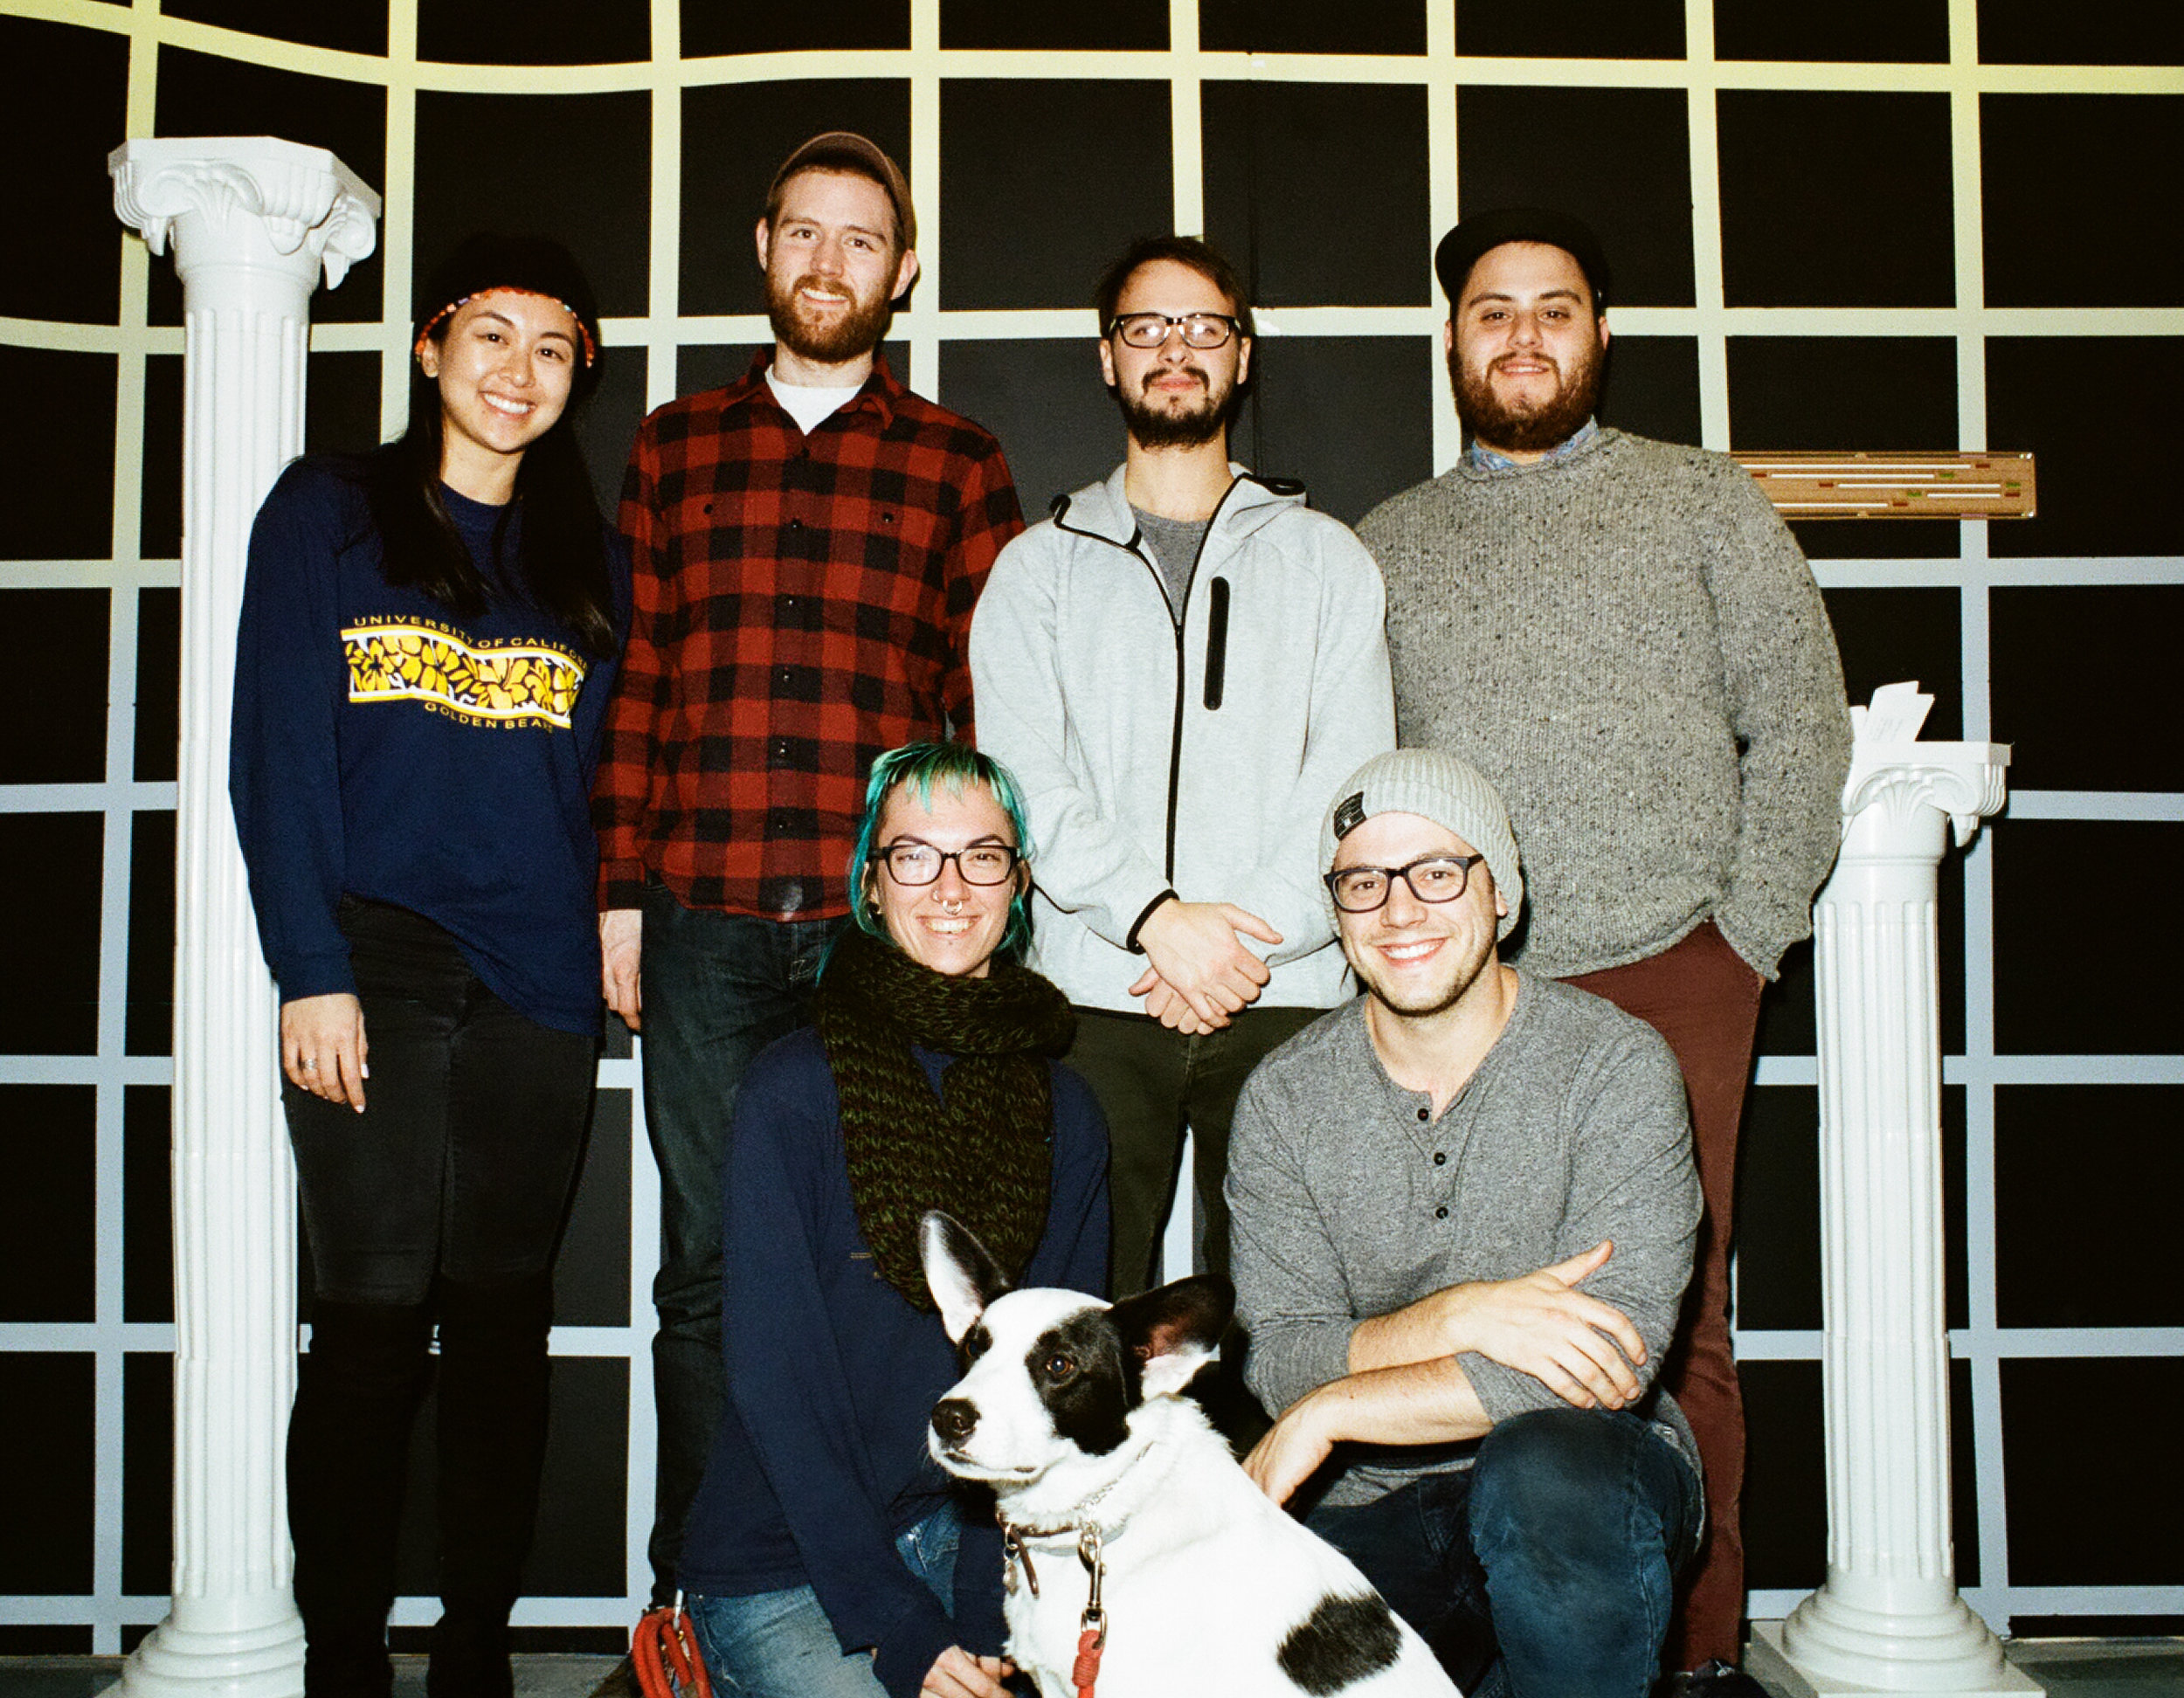 From left to right: Kayla (venue launch), David (Product), Madison (Product Implementation), Giuseppe (Marketing, Cofounder), Ethan (CEO, Cofounder),, Domenic (Operations)